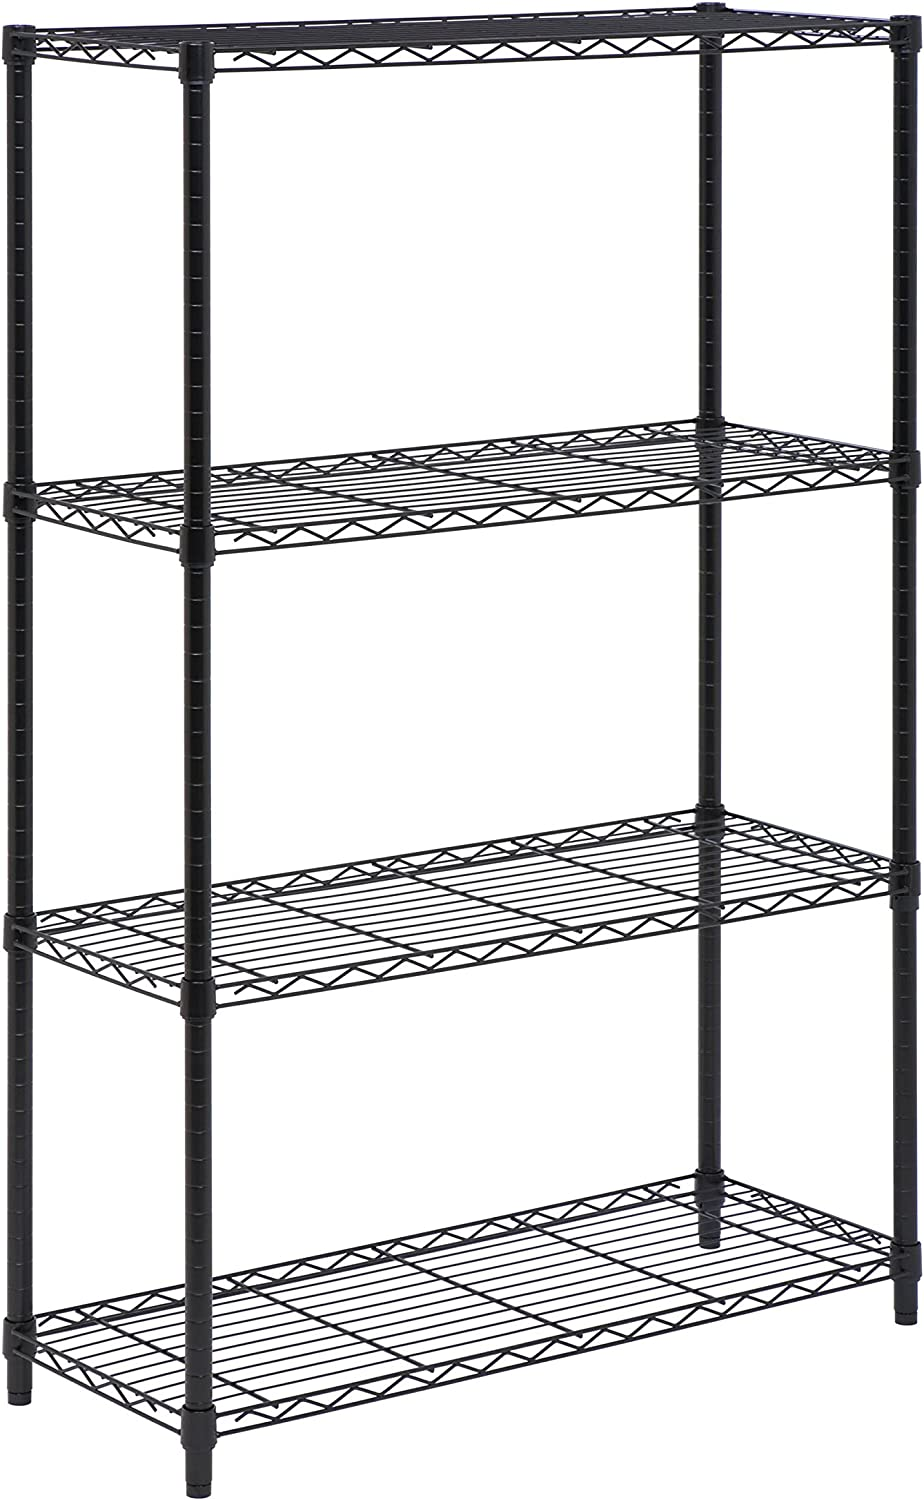 Honey-Can-Do SHF-03936 4-Tier Shelving Unit Rack with 350-Pound Capacity, 14 x 36 x 54-Inch,Black